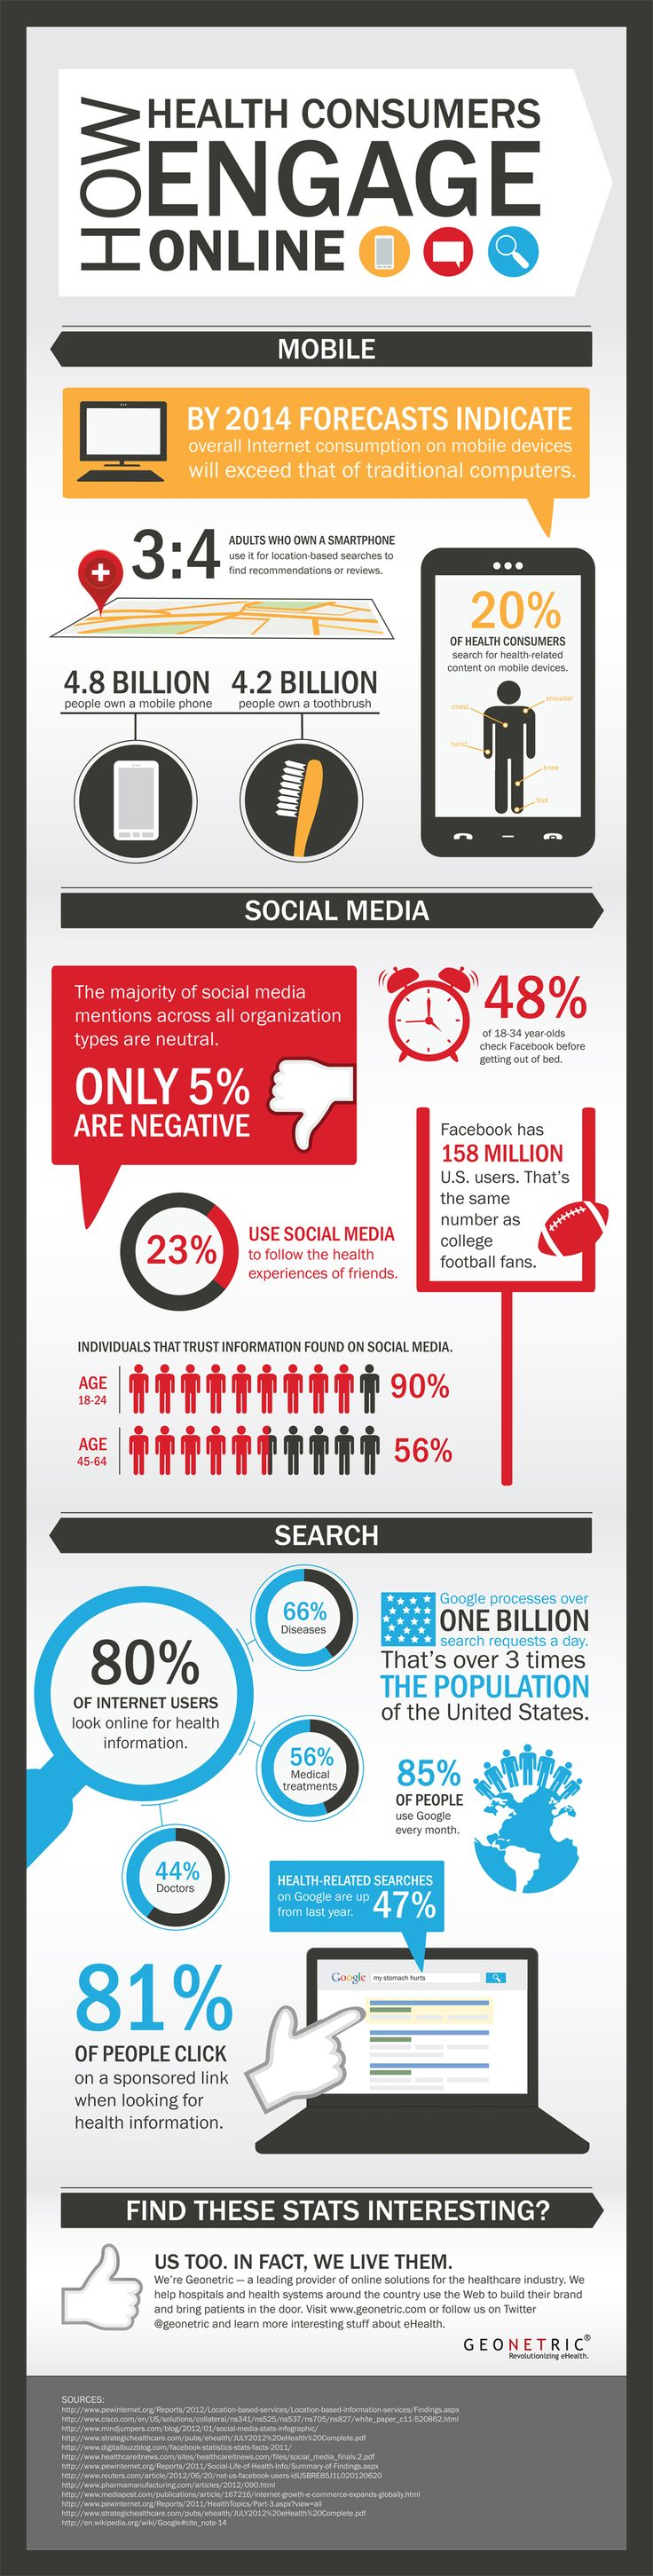 How healthcare consumers engage online #infographics #healthcare #epatients #mhealth